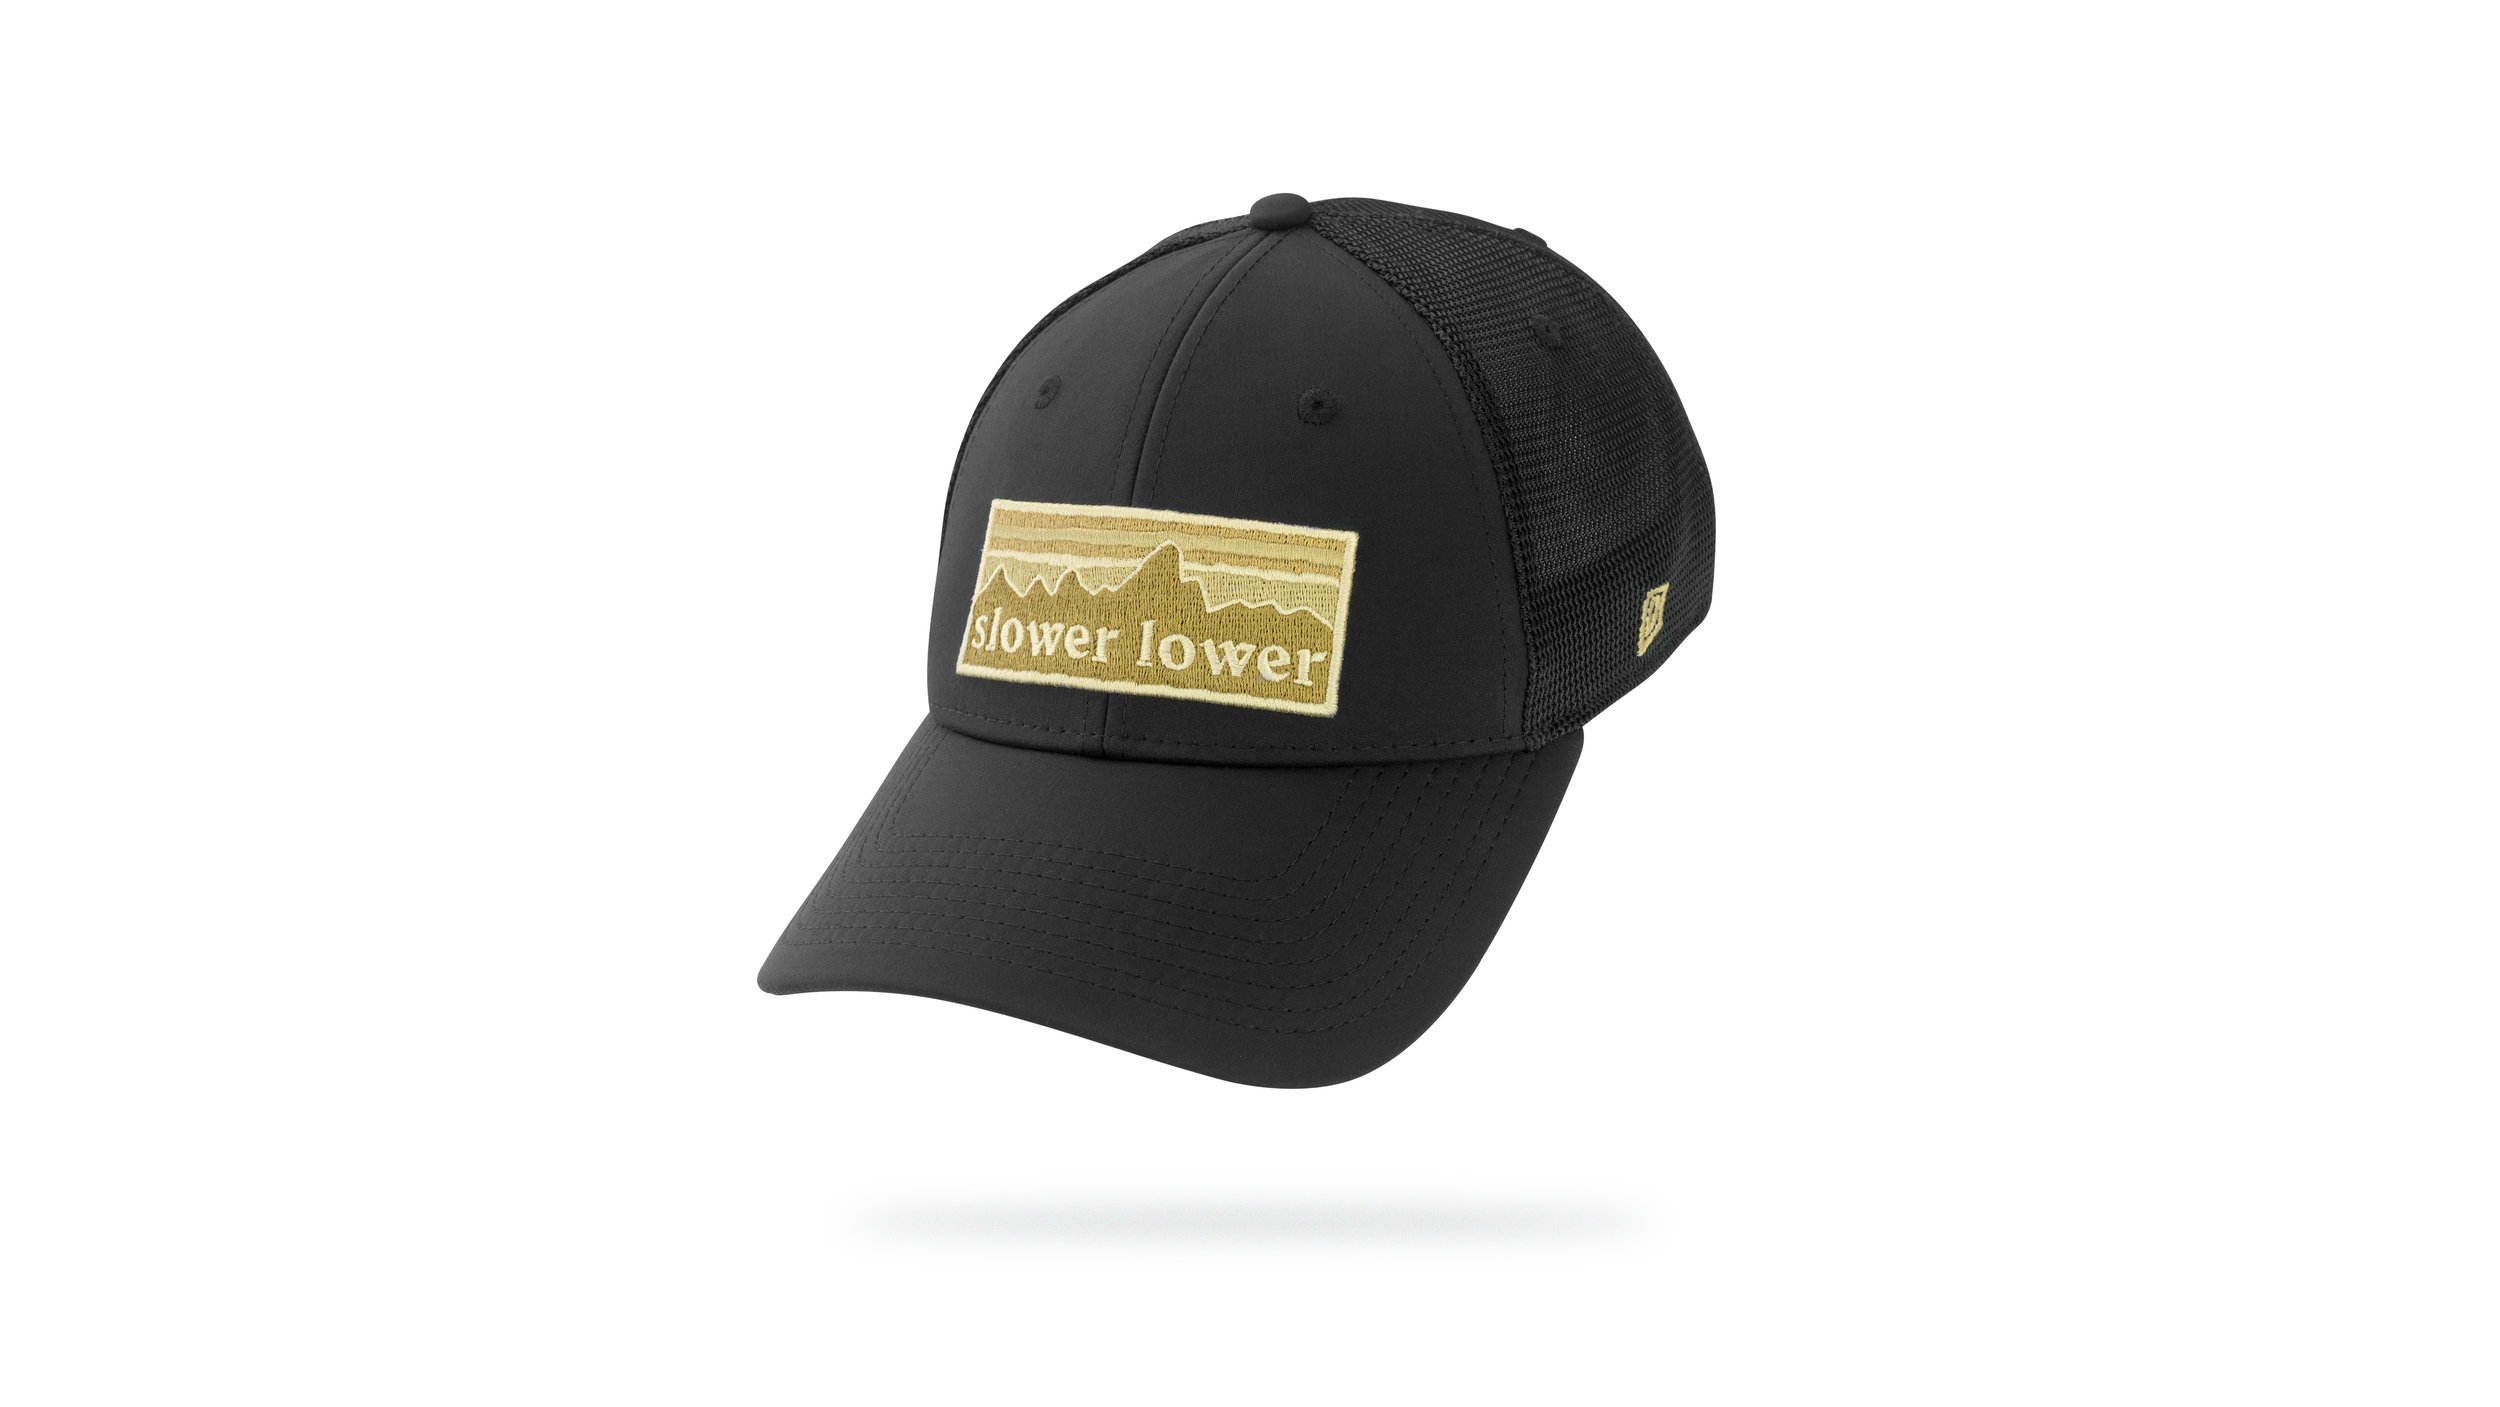 Featured Hat: STYLE III - Performance Trucker Cap w/ Curved Visor & Twill Patch Applique